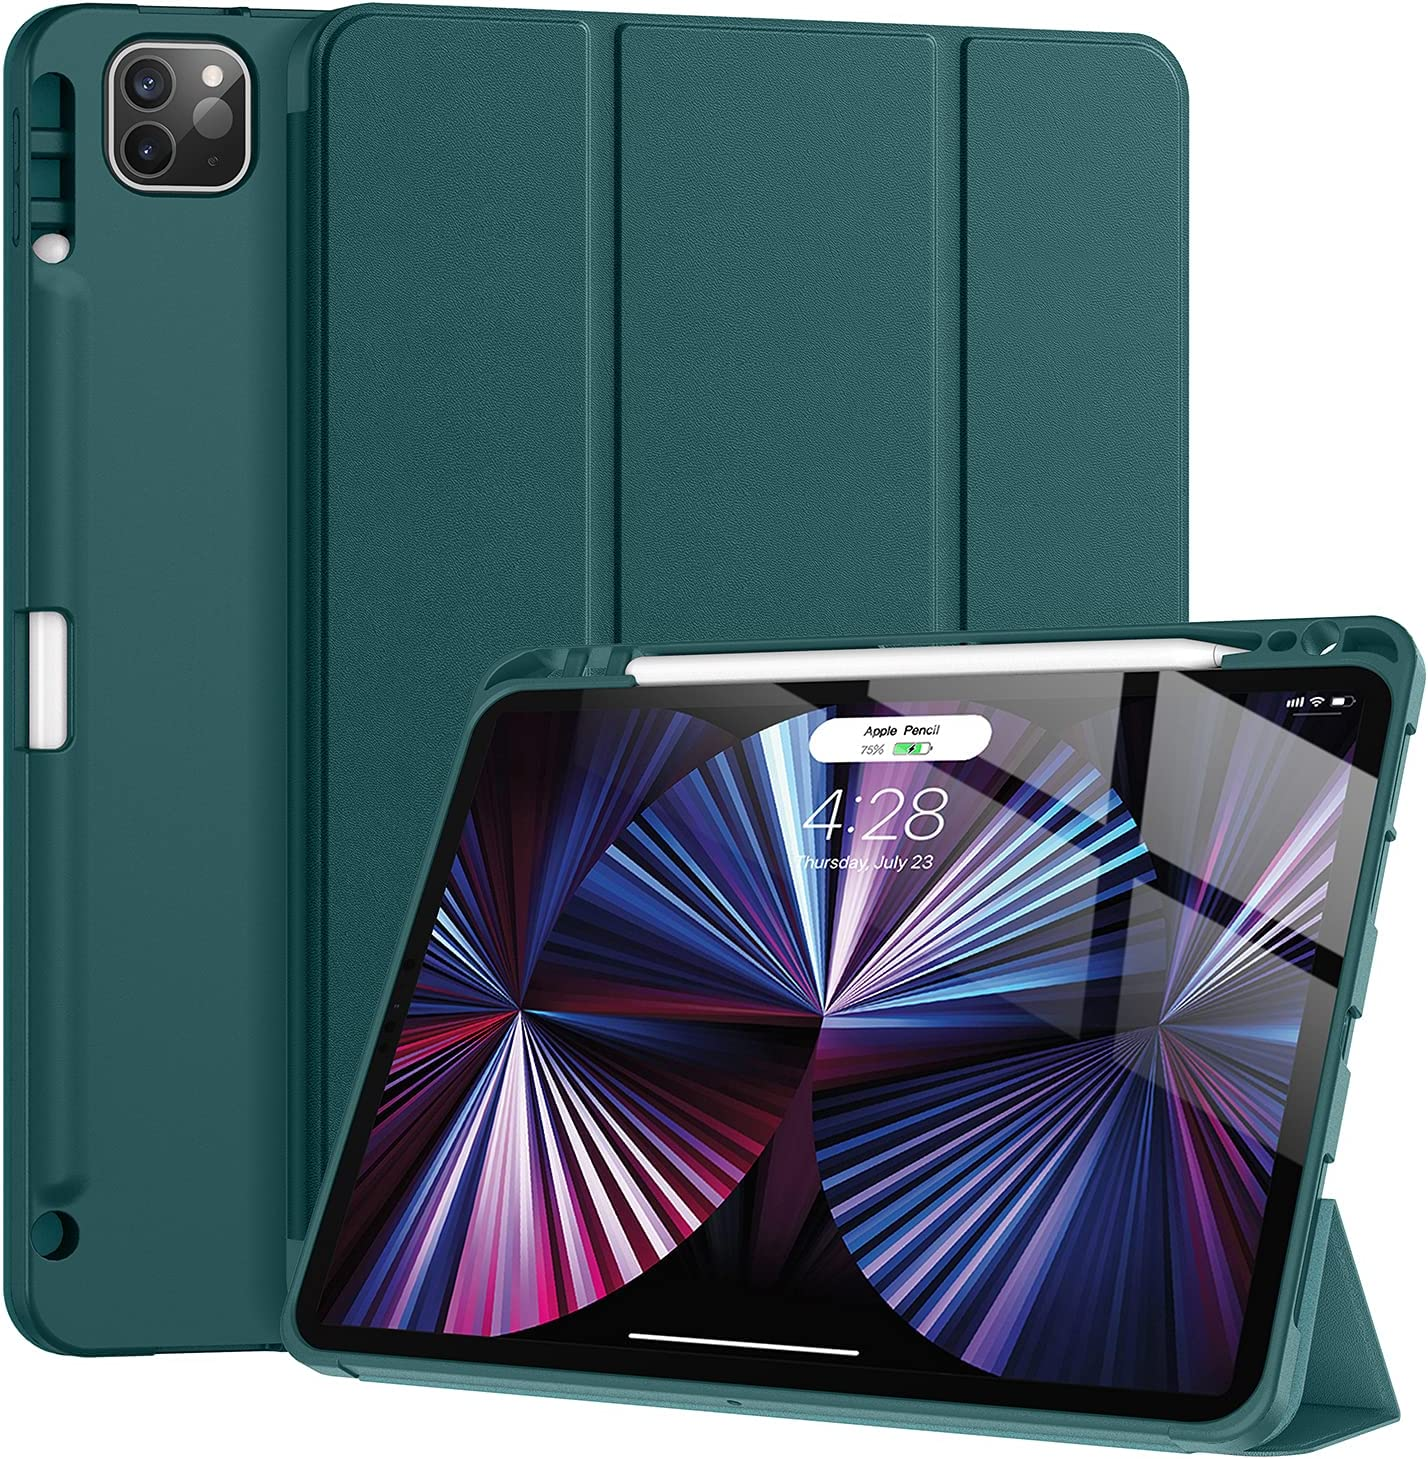 Tuosake iPad Pro 11 inch Case 2021 with Pencil Holder, Slim Lightweight Trifold Stand Case with Soft TPU Back Cover【Auto Sleep /Wake+Pencil Charging】 Smart Case for iPad Pro 11 3rd Gen(Dark Teal)